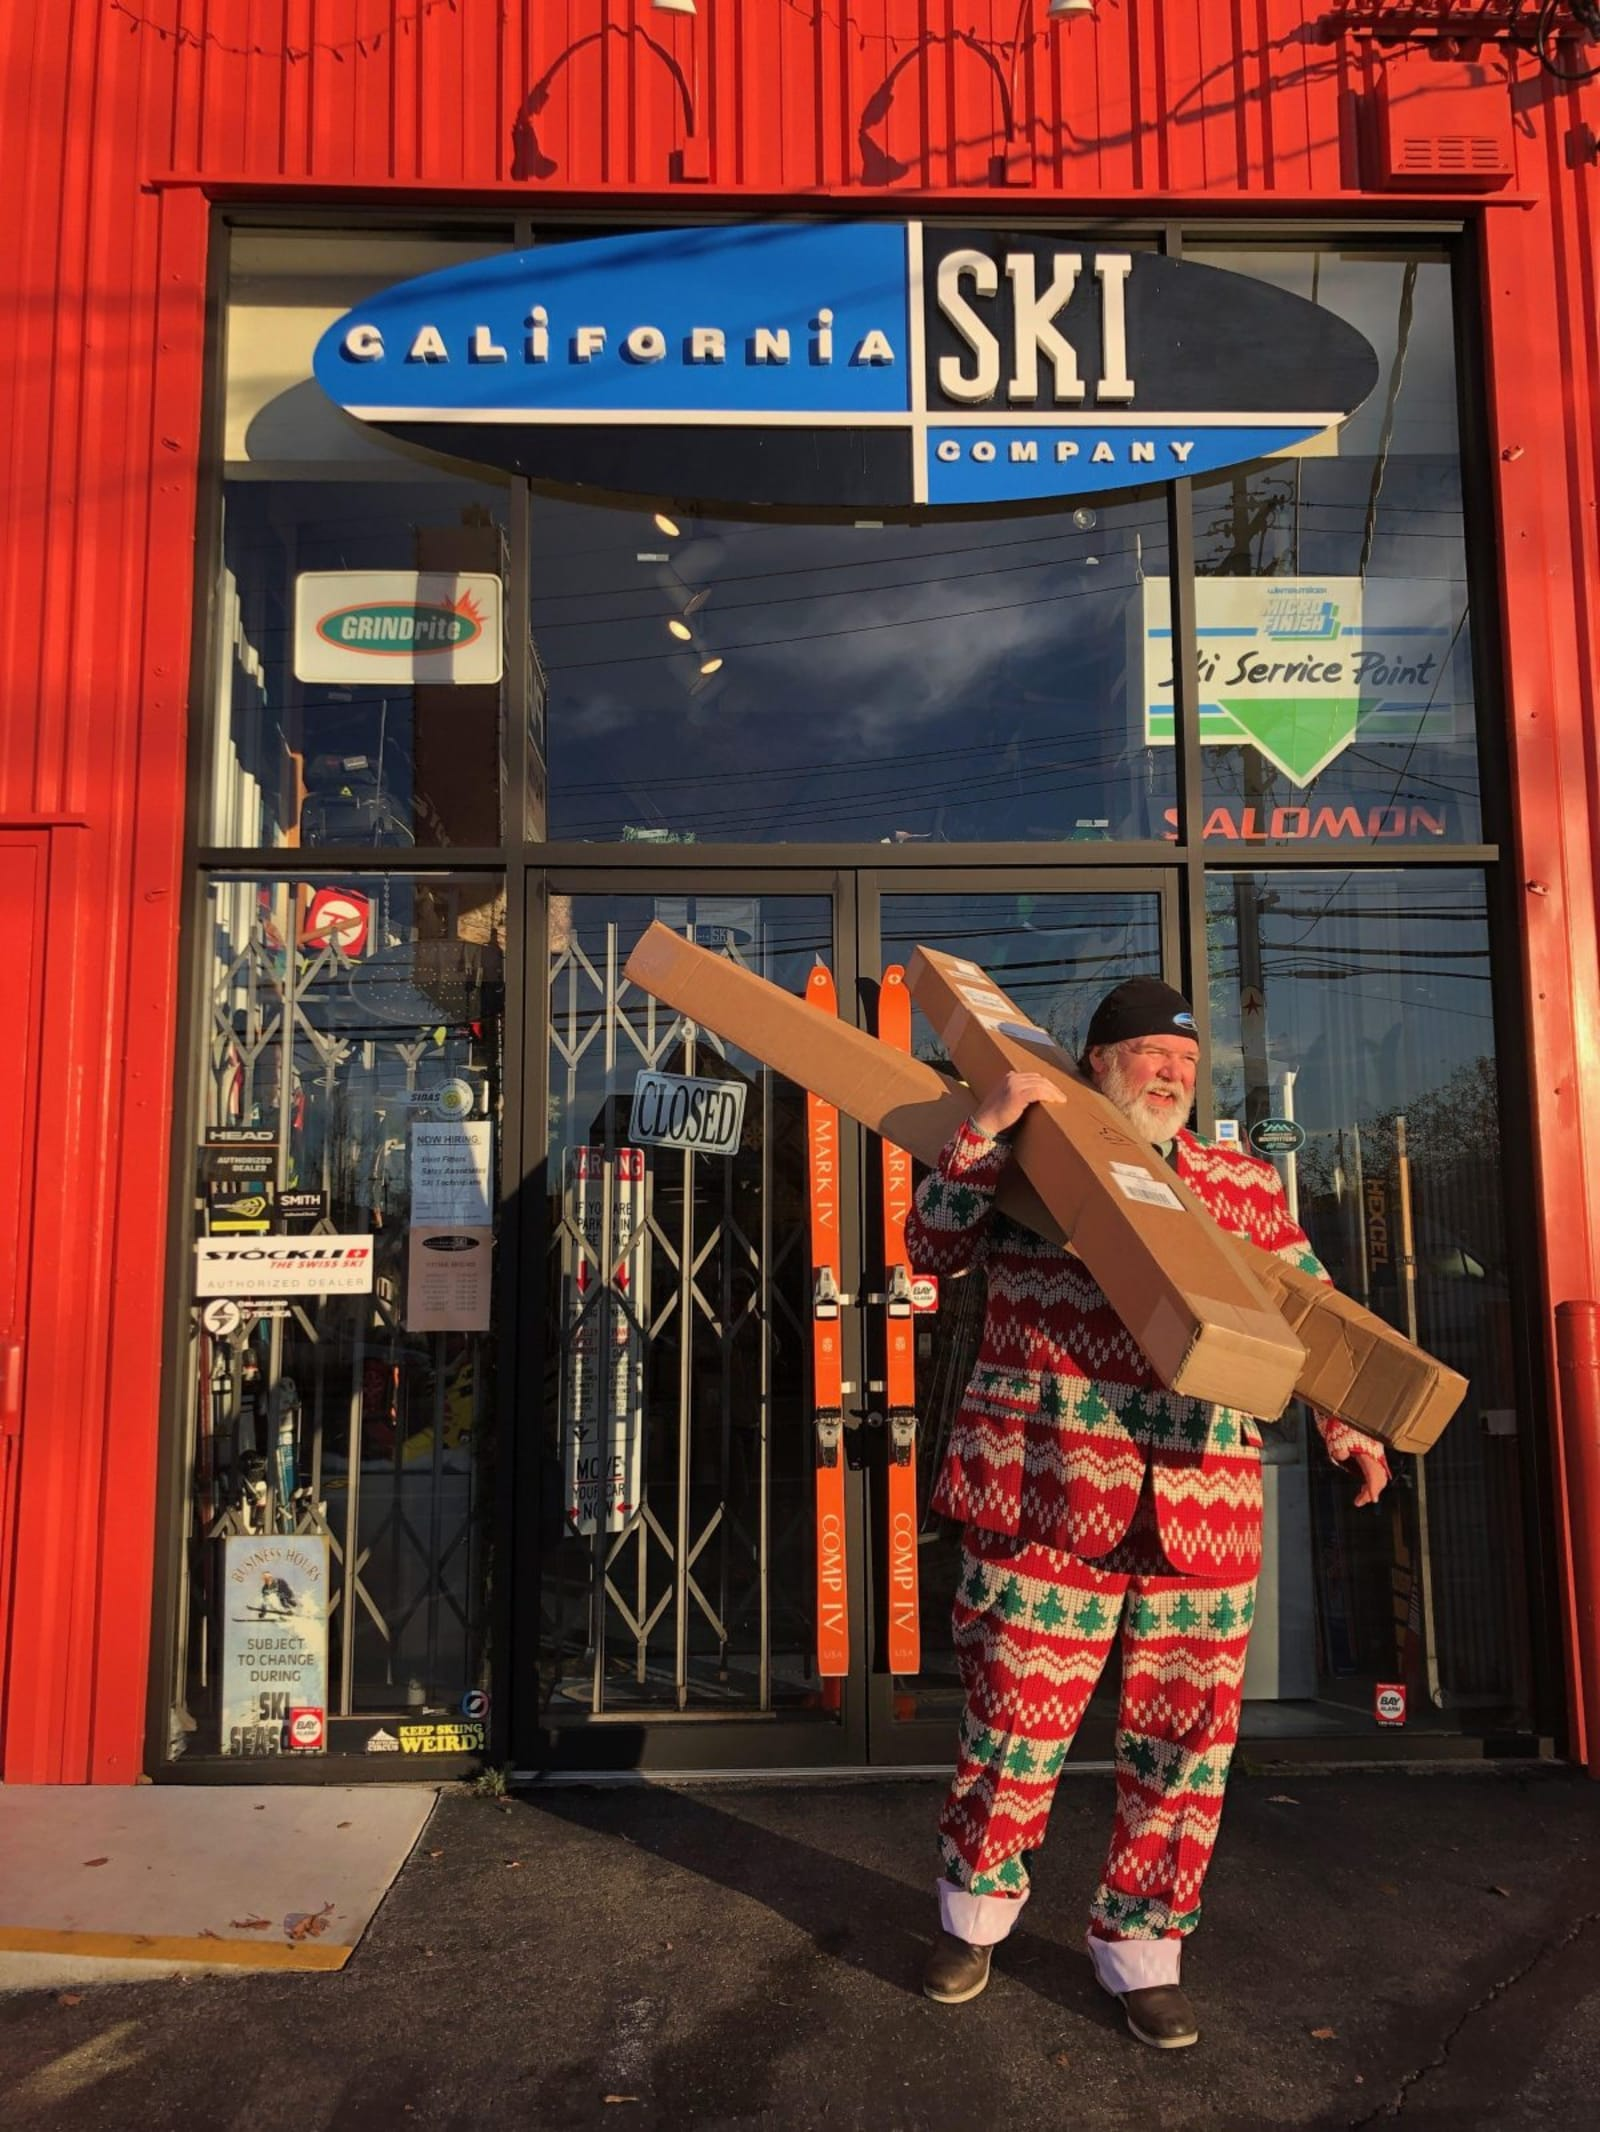 Gifts at California Ski Company